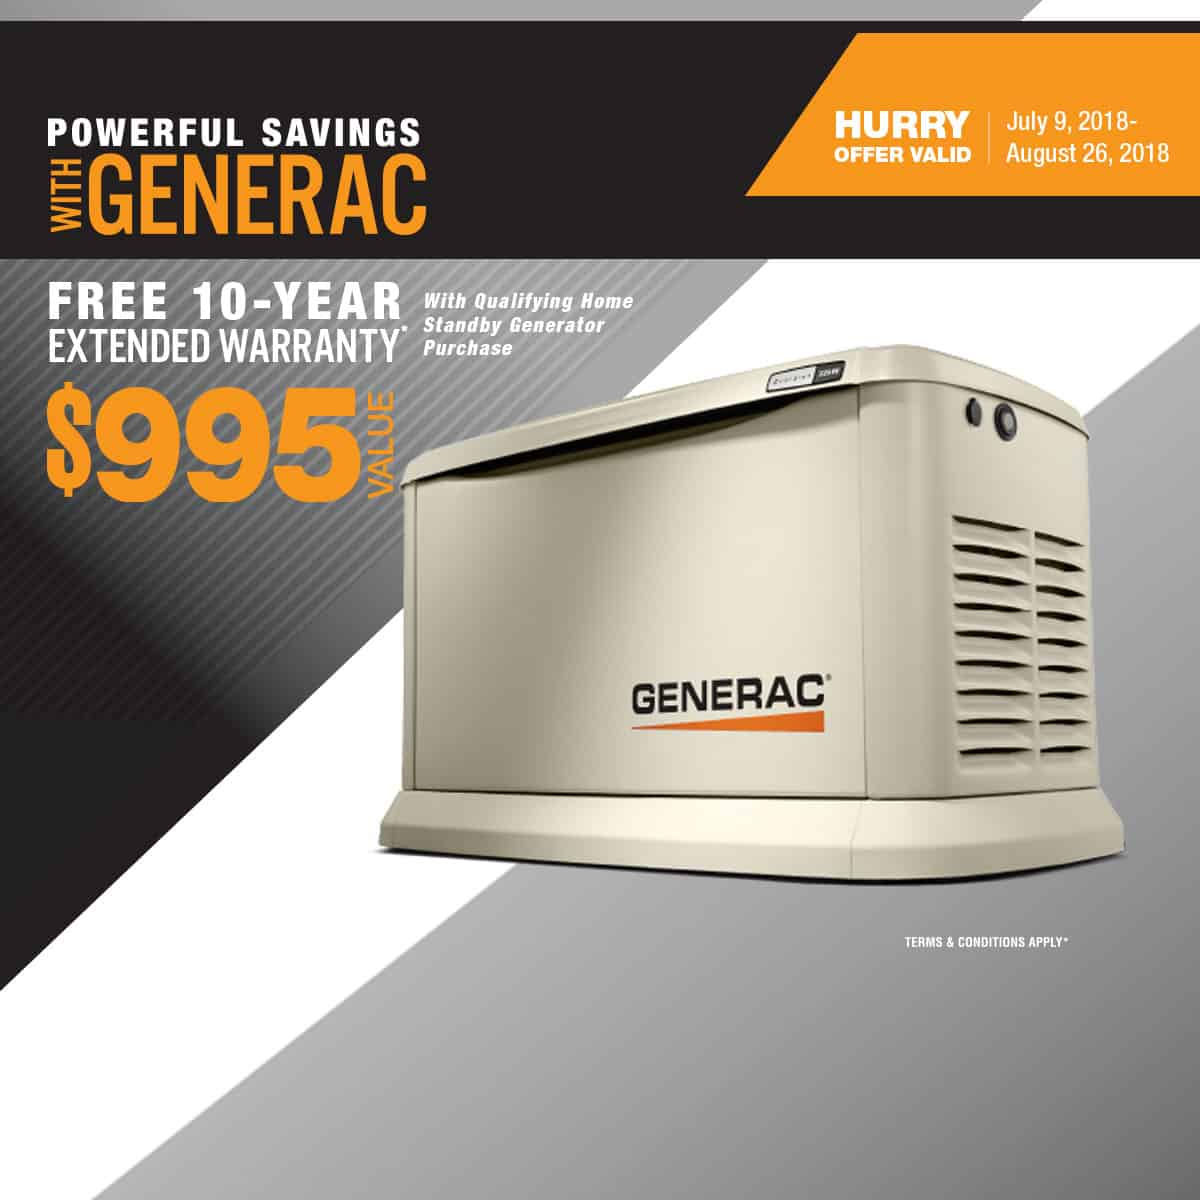 Powerful Savings: Generac Free 10-Year Extended Standby Warranty